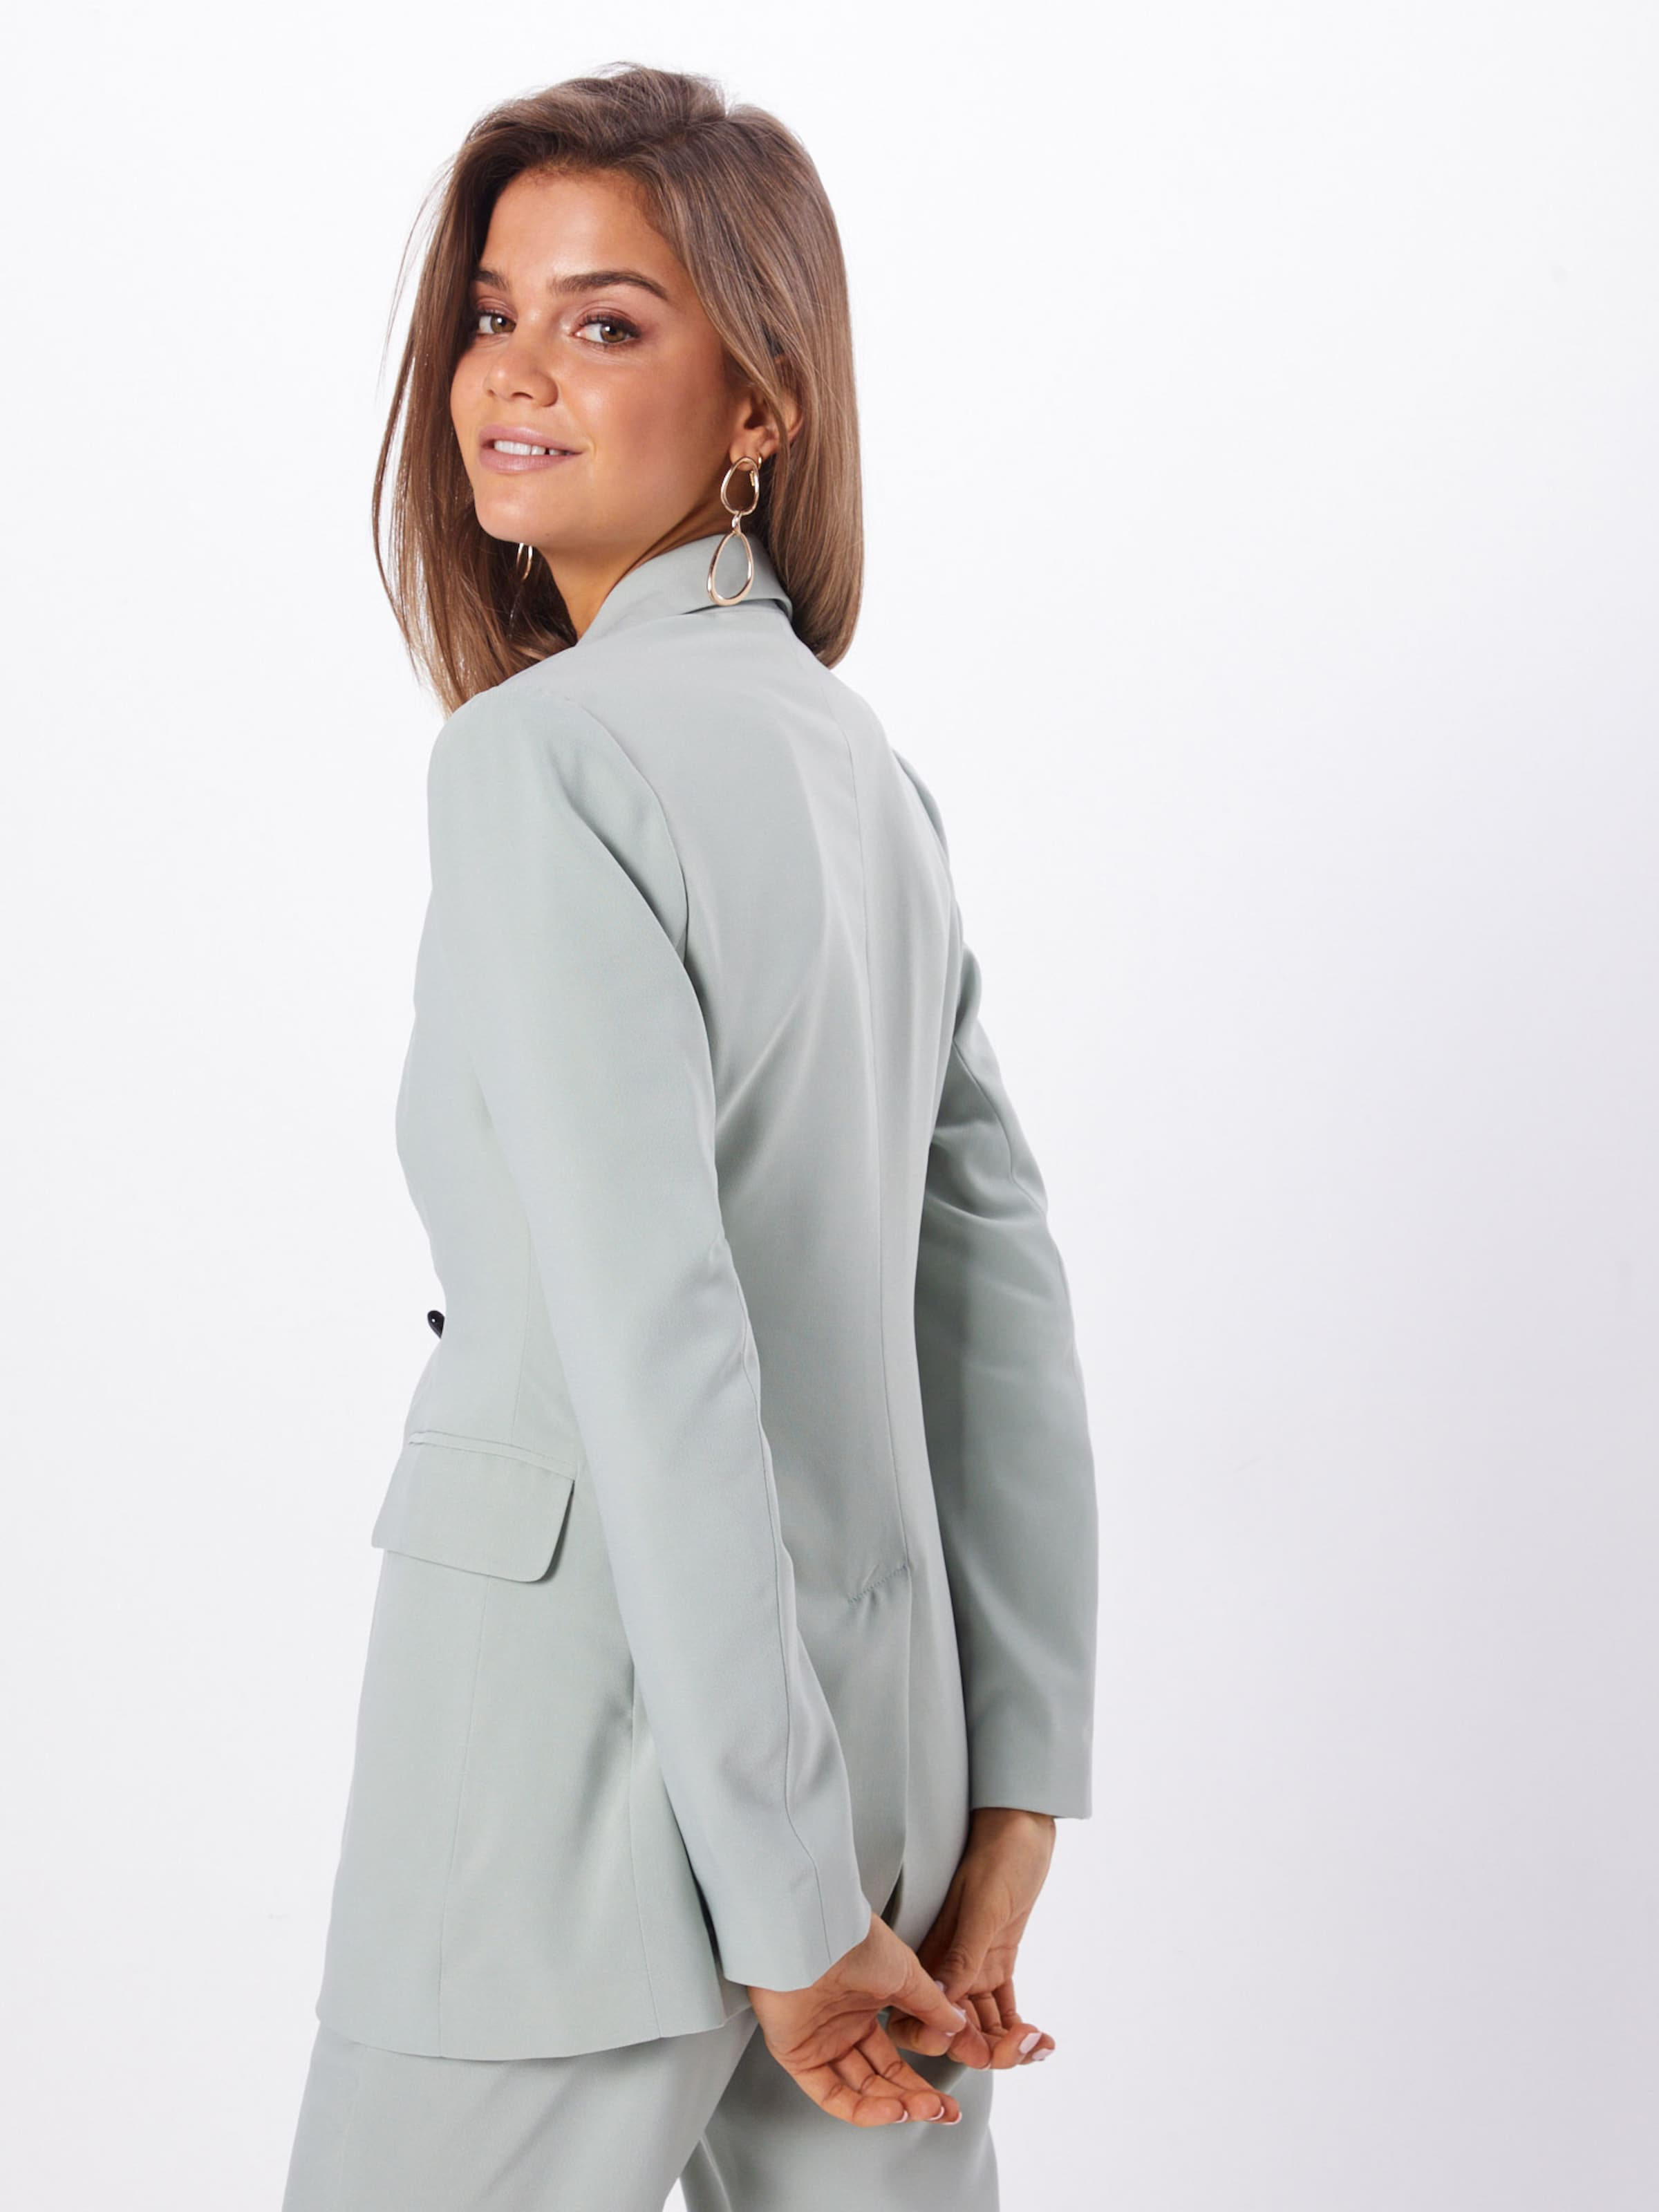 'lila' In Reckless Blazer 4thamp; Mint nwm0NvO8